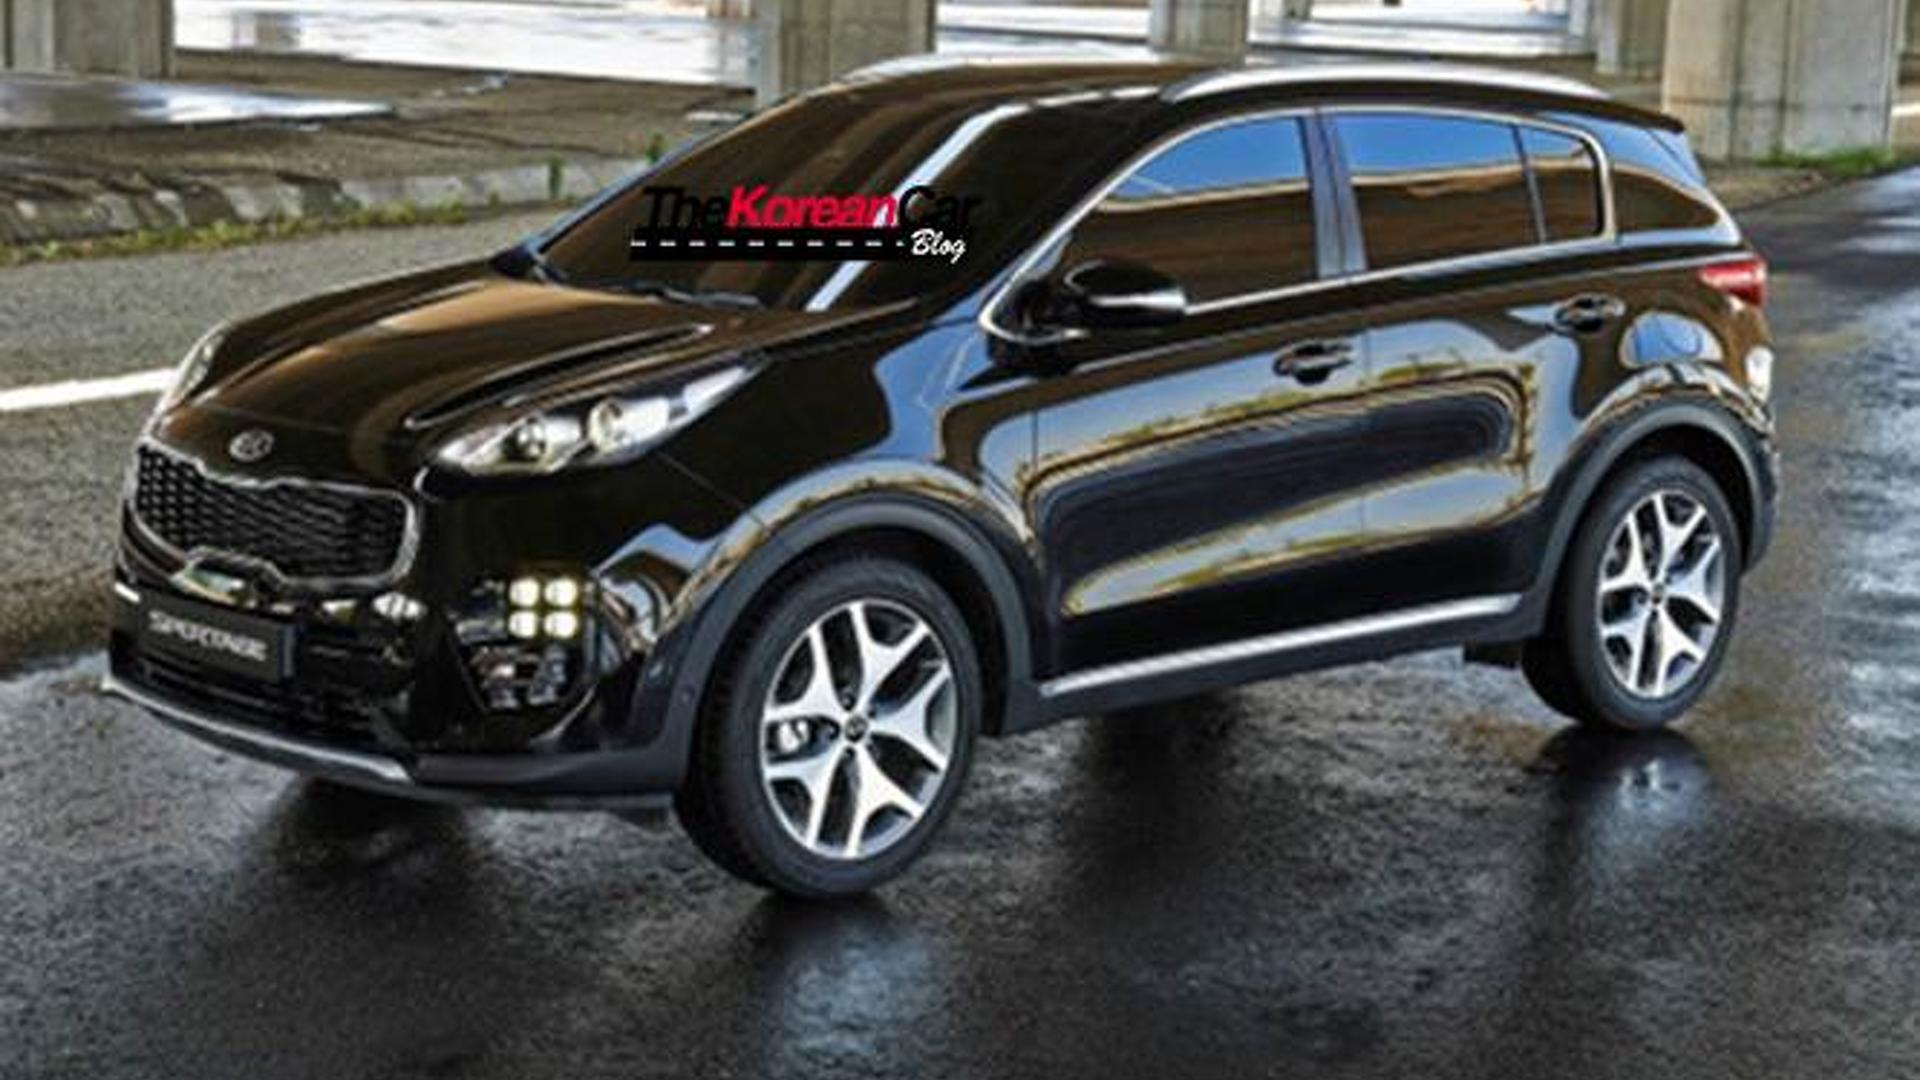 reviews magazine car sportage edition kia first review by crdi